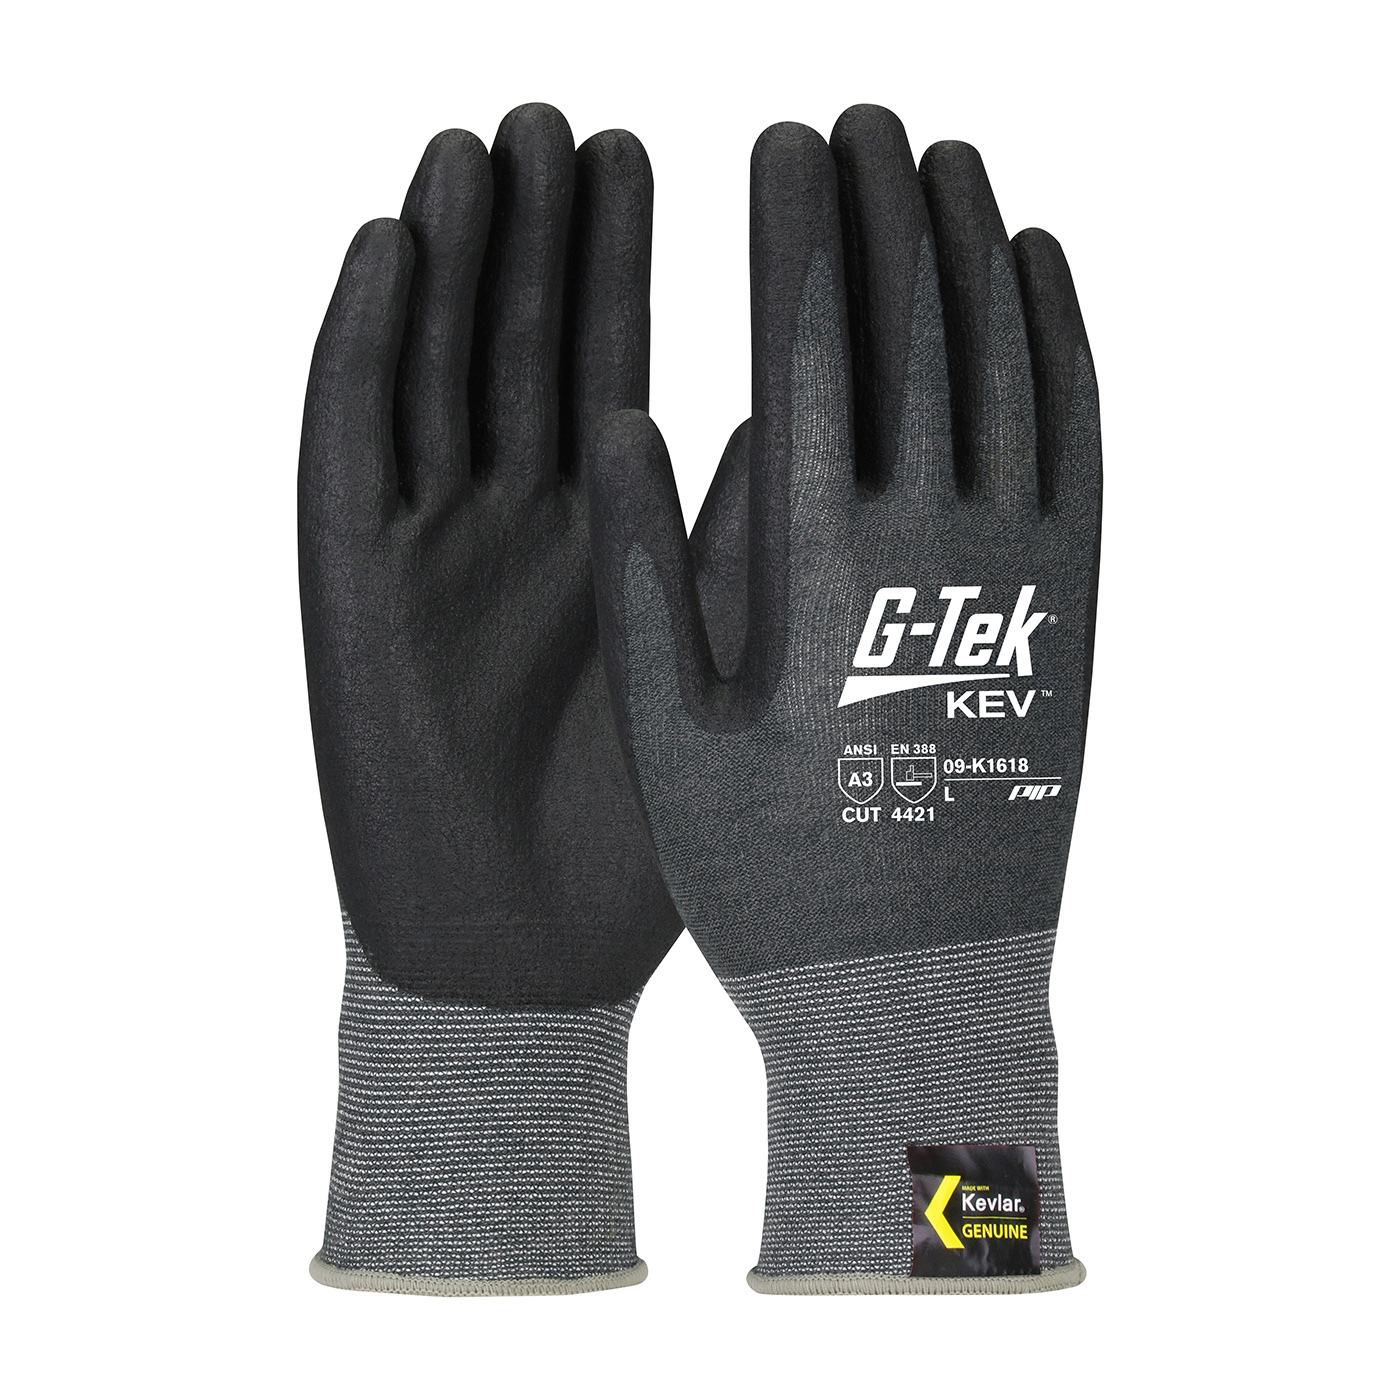 Protective Industrial Products 09-K1618 Seamless Knit Kevlar® Blended Glove with Nitrile Coated Foam Grip on Palm & Fingers